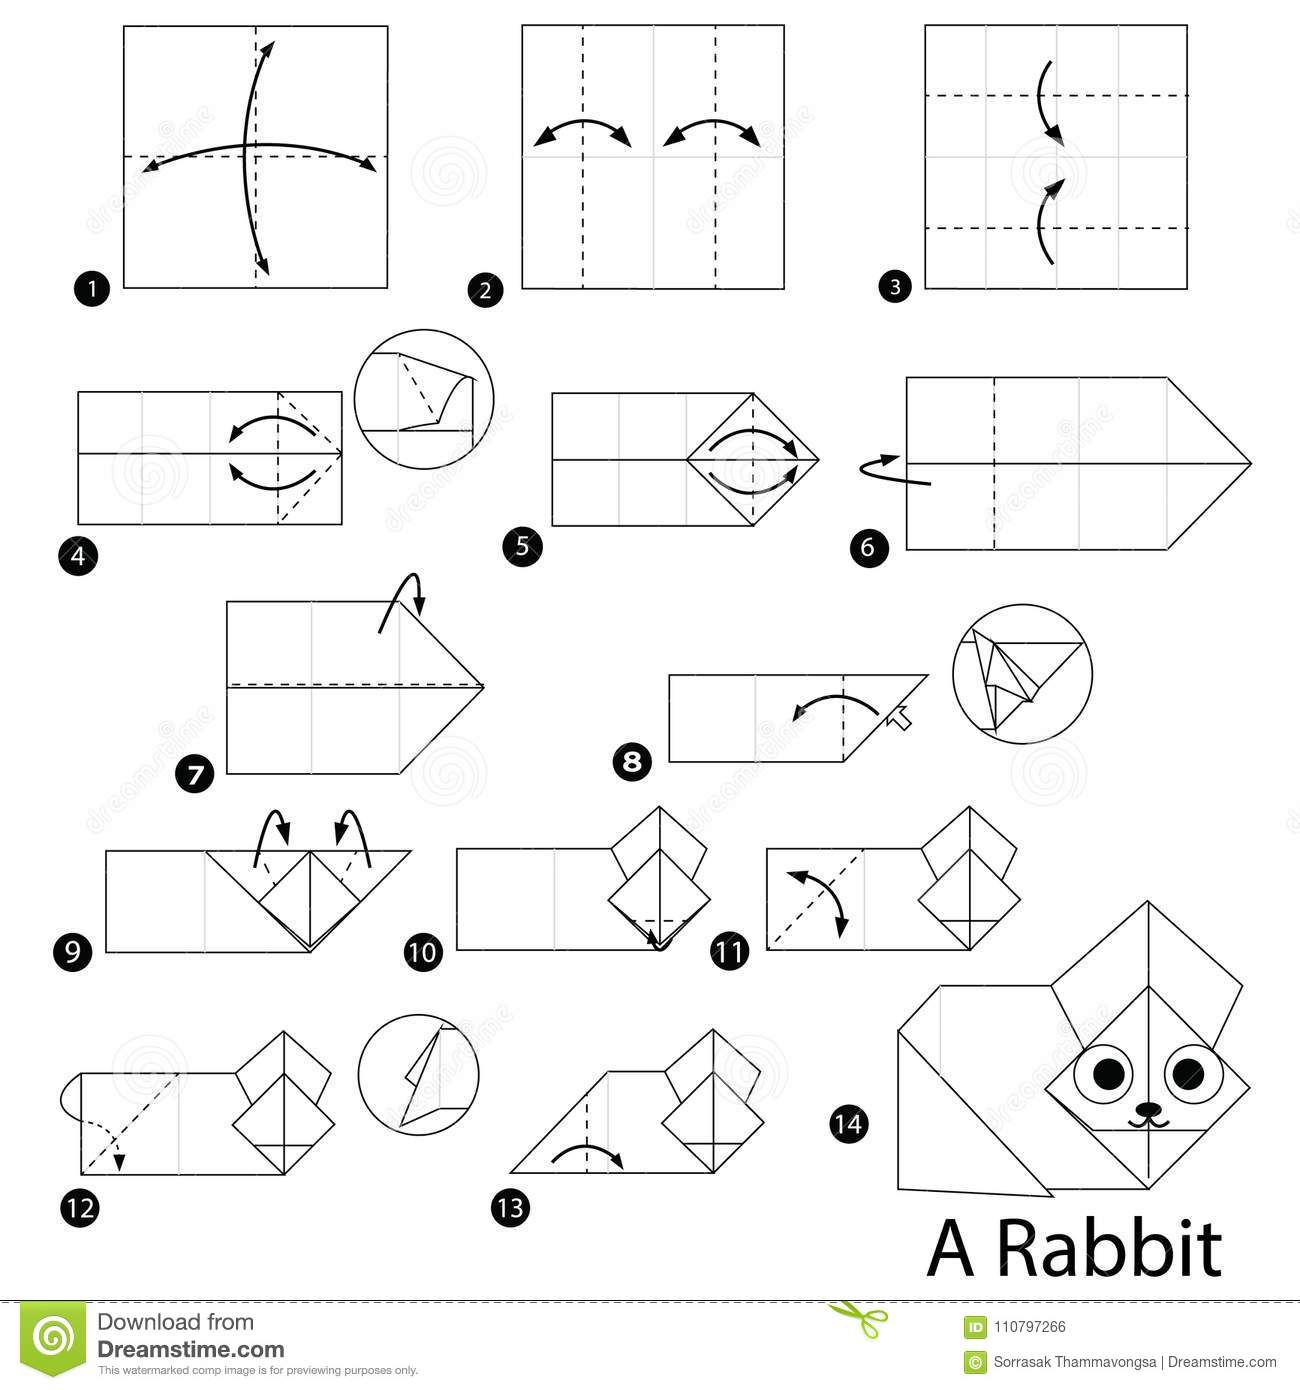 Origami Bunny Tutorial With Printable Template - Easy Peasy and Fun | 1390x1300